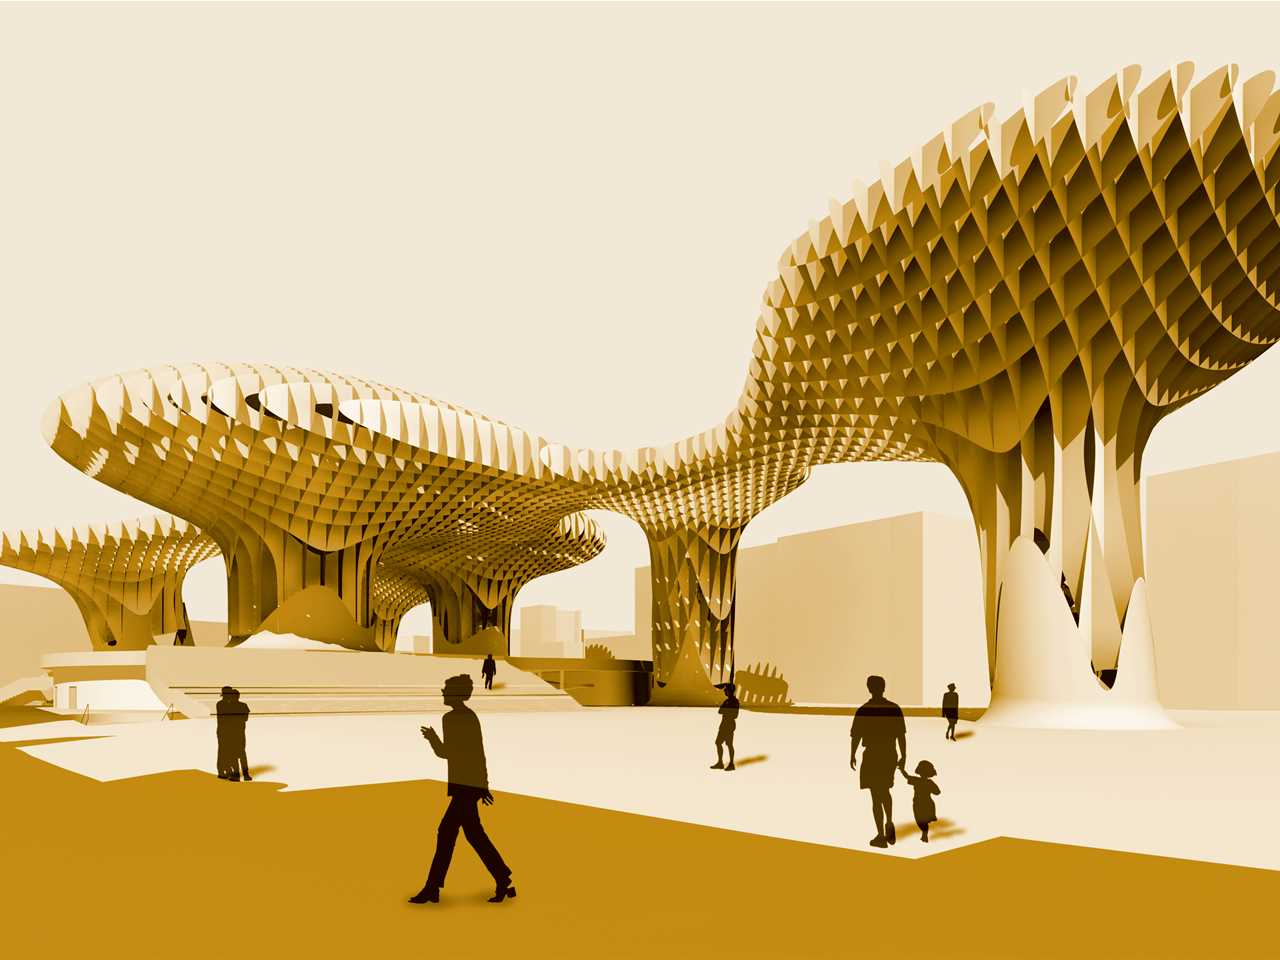 Holcim Awards Bronze 2005 Europe: Metropol Parasol, Spain